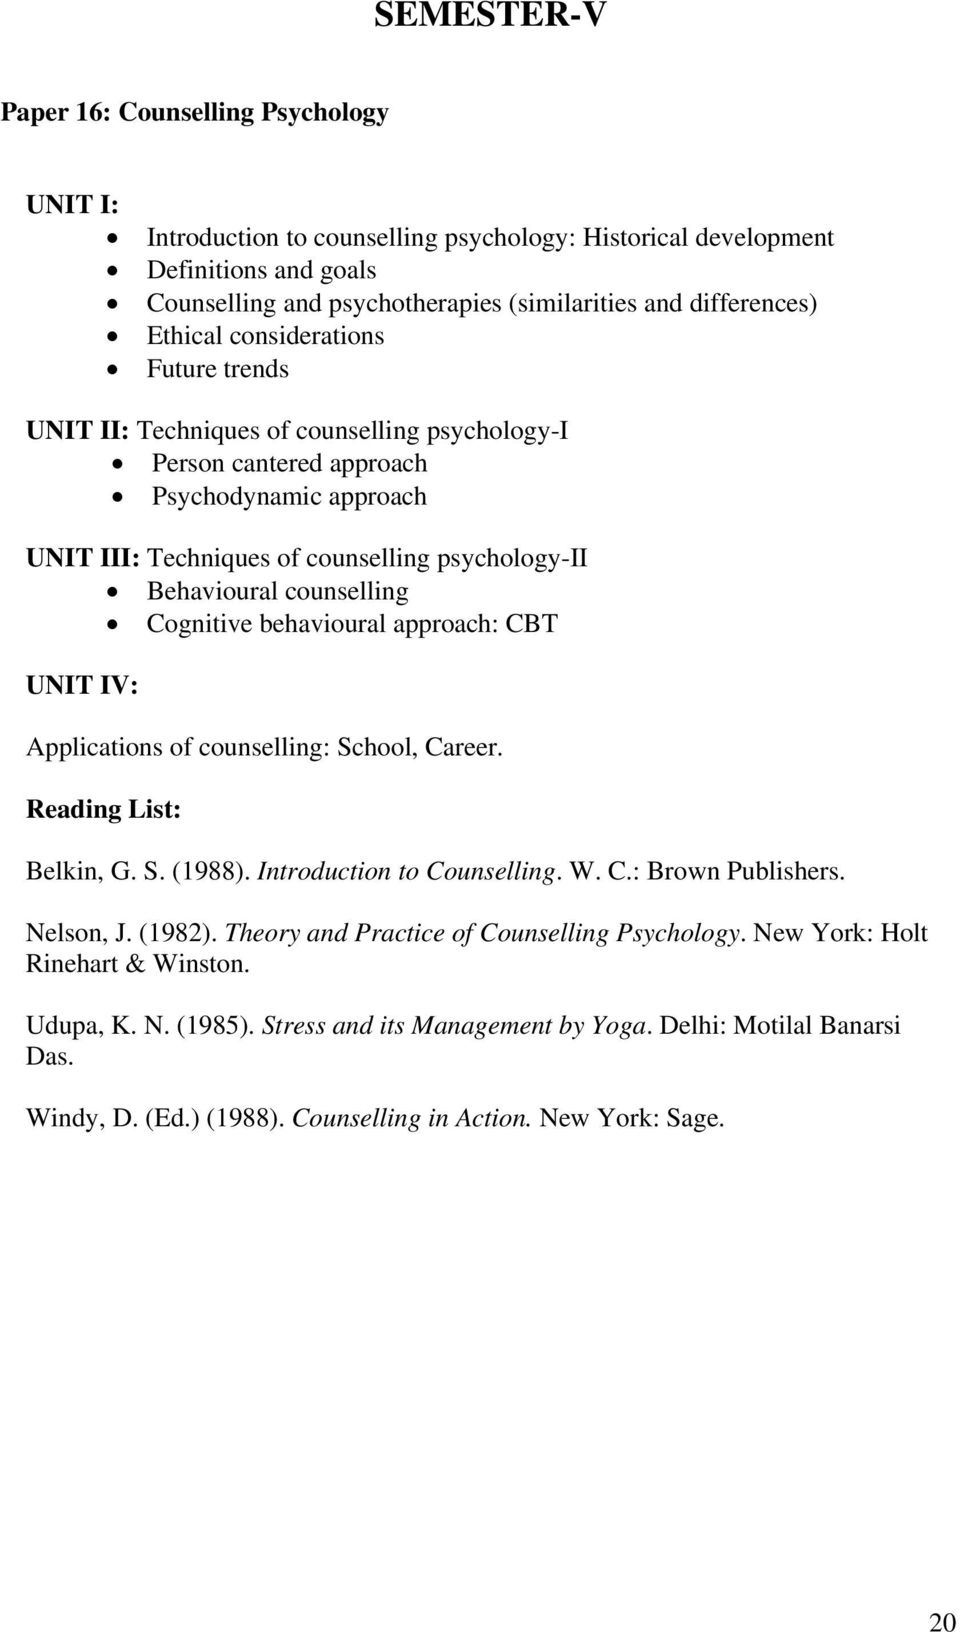 counselling Cognitive behavioural approach: CBT UNIT IV: Applications of counselling: School, Career. Belkin, G. S. (1988). Introduction to Counselling. W. C.: Brown Publishers. Nelson, J. (1982).